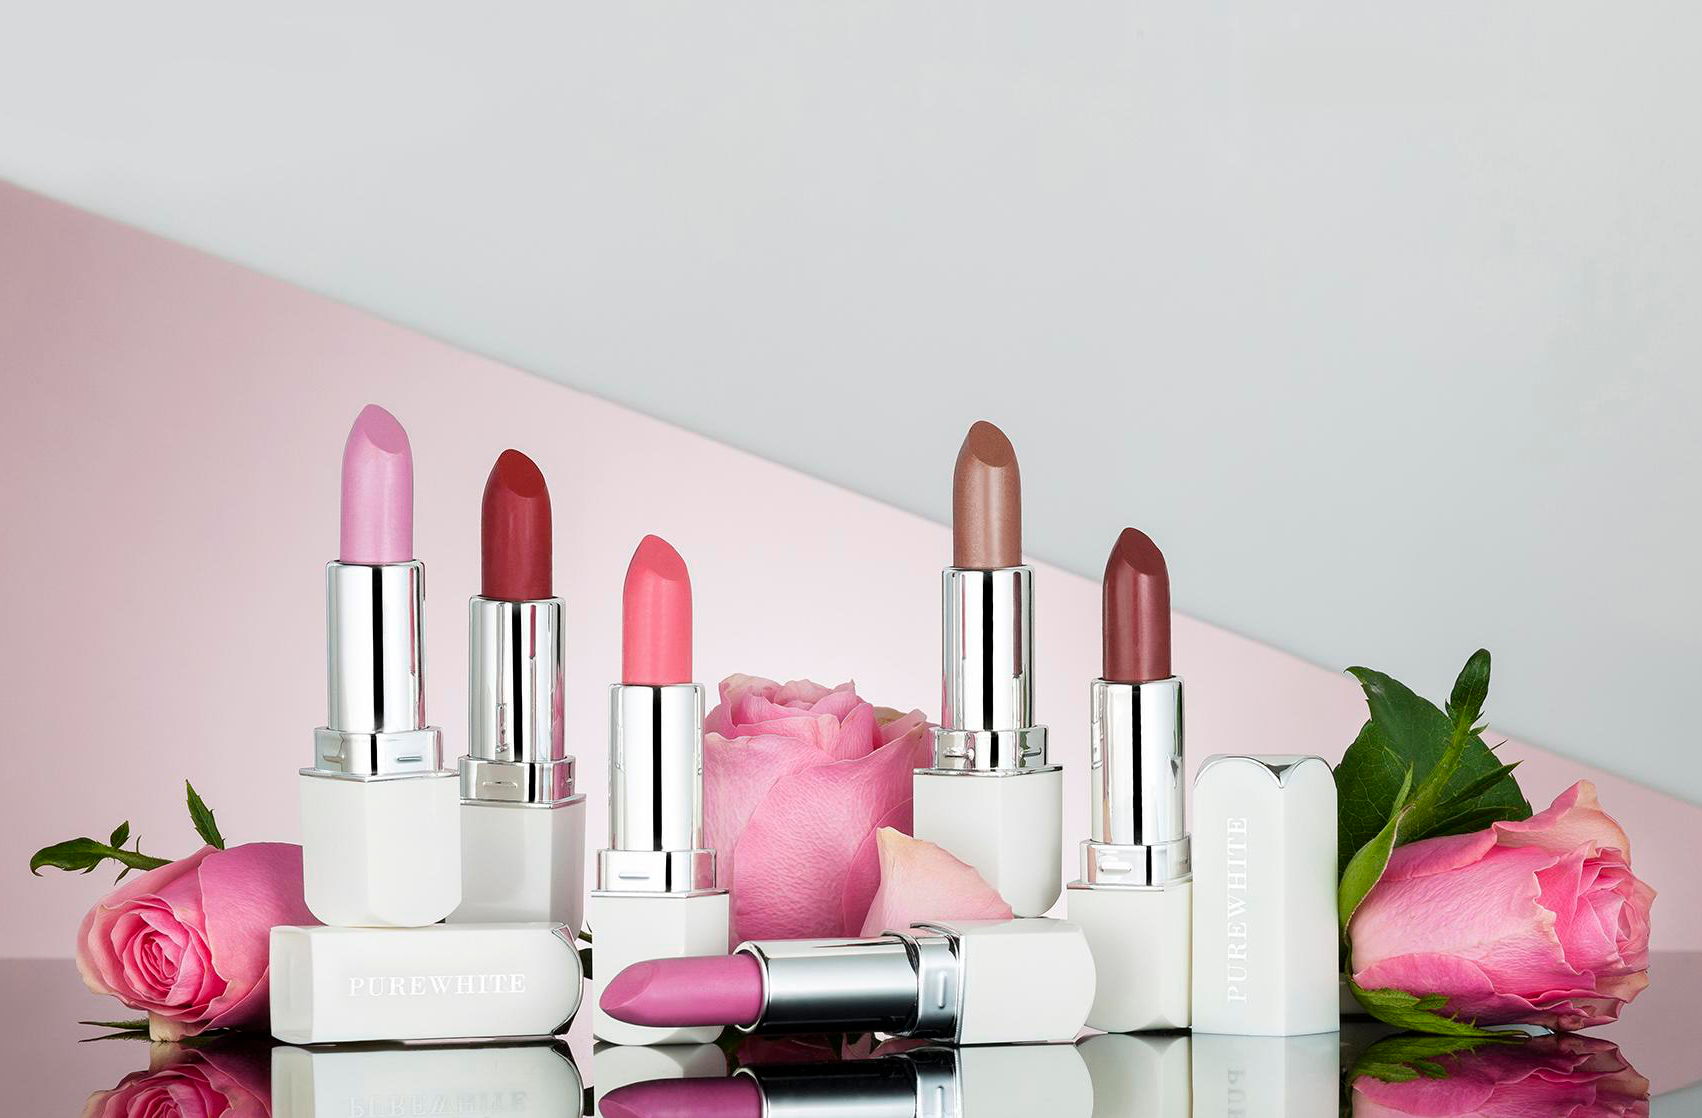 Pure White Cosmetics - Purely Inviting Satin Cream Lipstick Collection